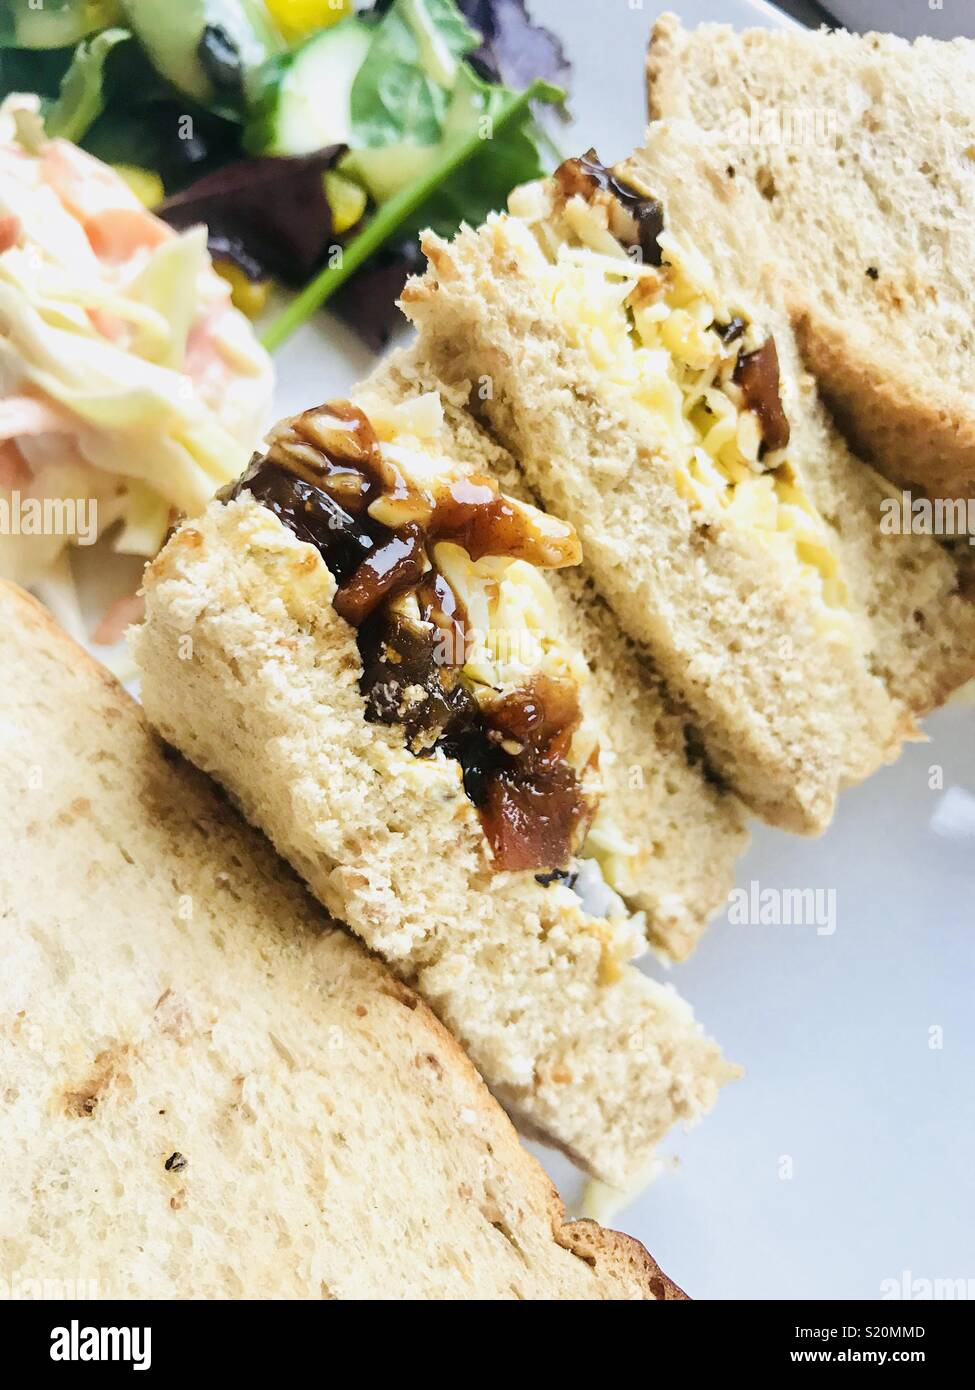 Cheese and pickle brown bread sandwich with side salad - Stock Image